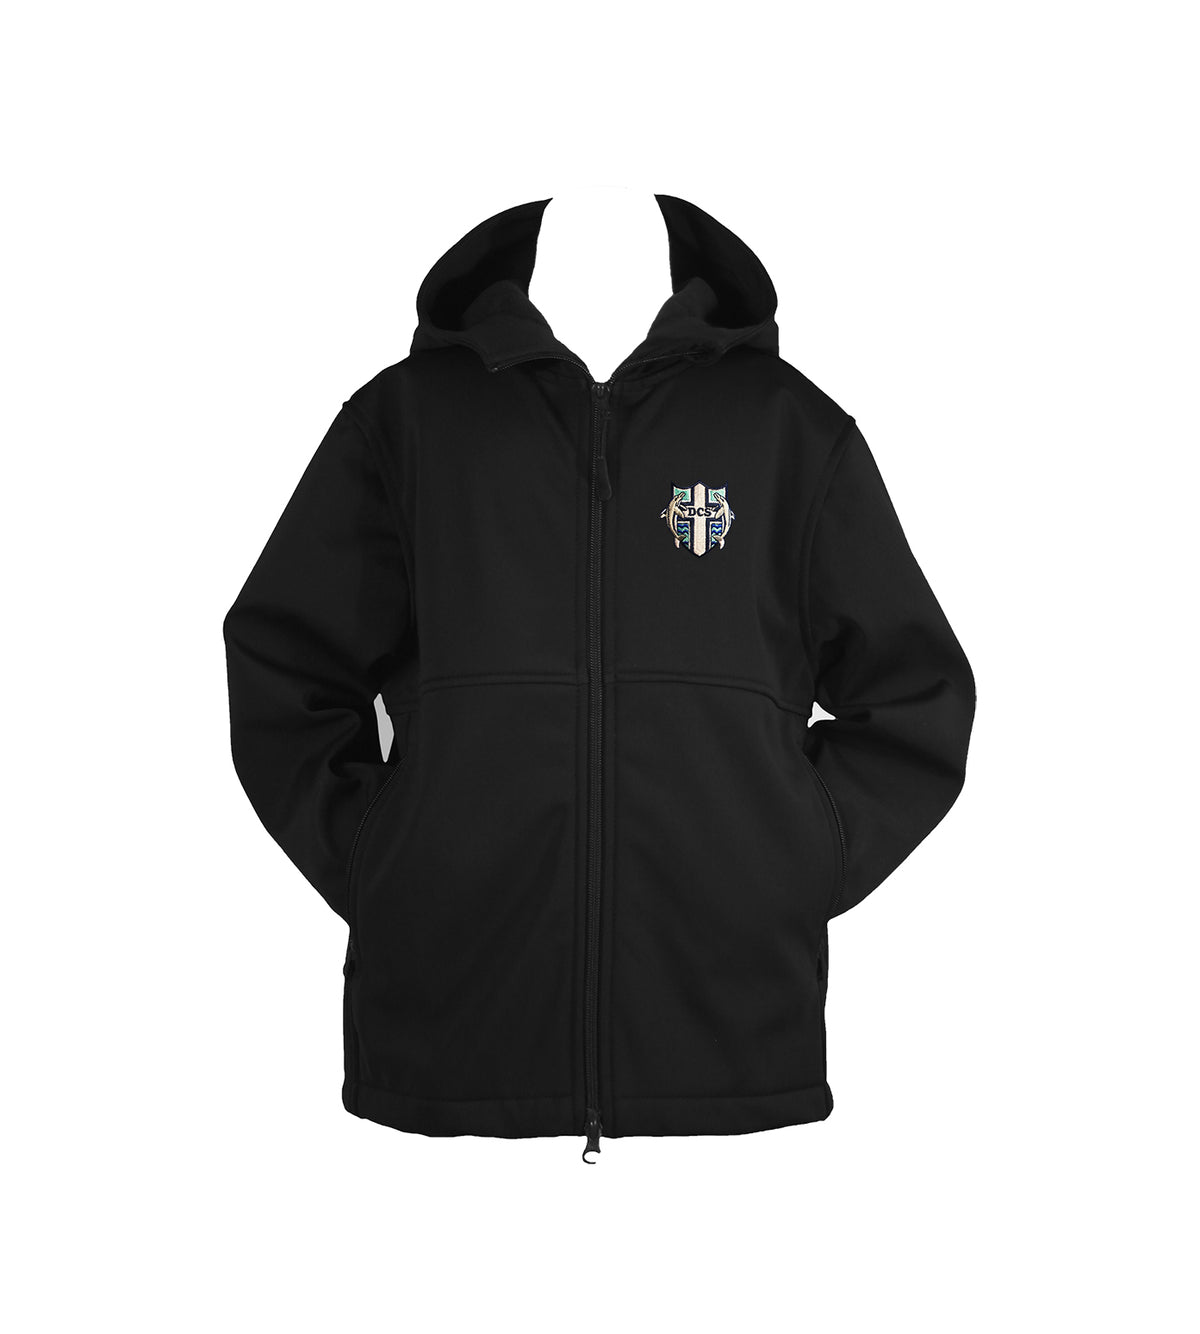 DELTA CHRISTIAN SCHOOL RAIN COAT WITH HOOD, UNISEX, CHILD